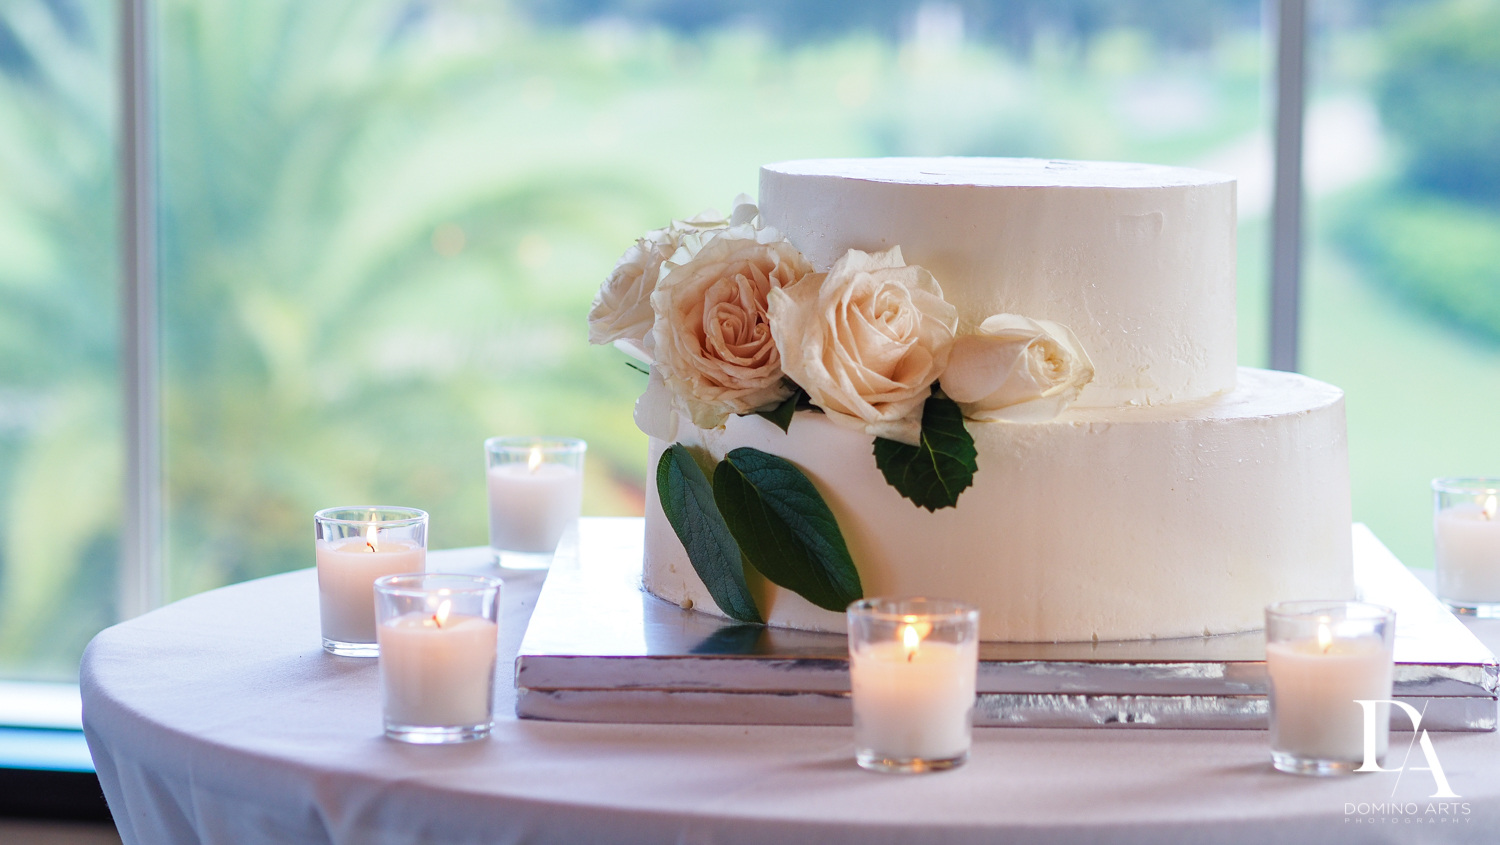 Beautiful Intimate Wedding cake at Mizner Country Club by Domino Arts Photography